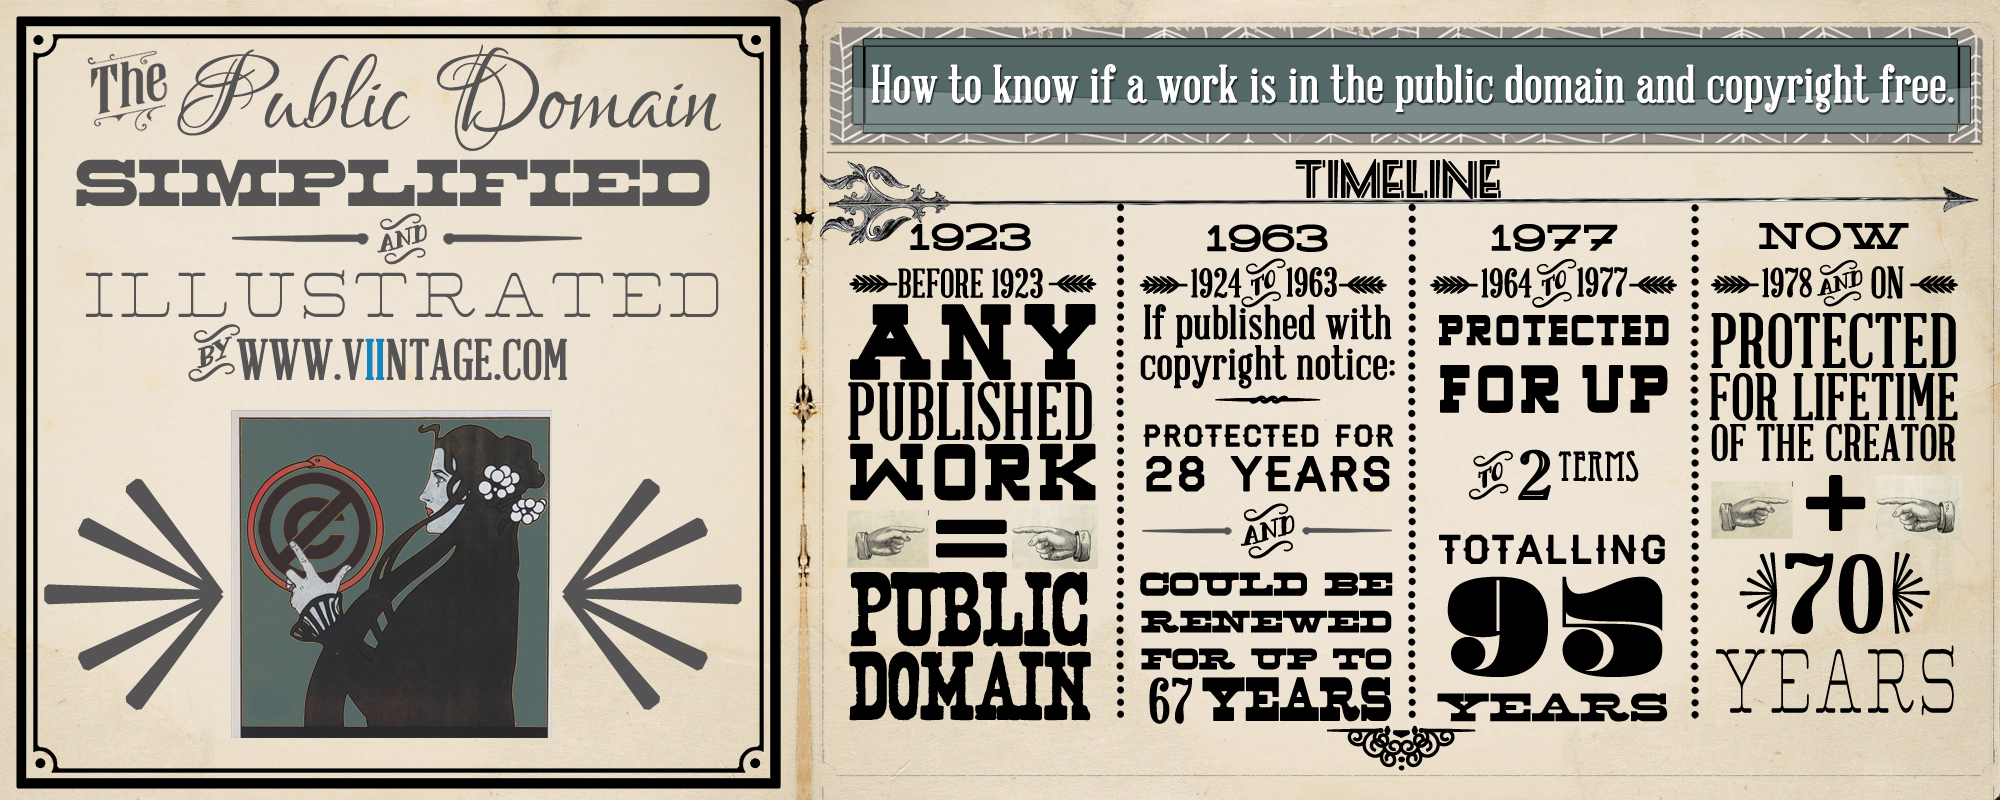 Public Domain An Infographic